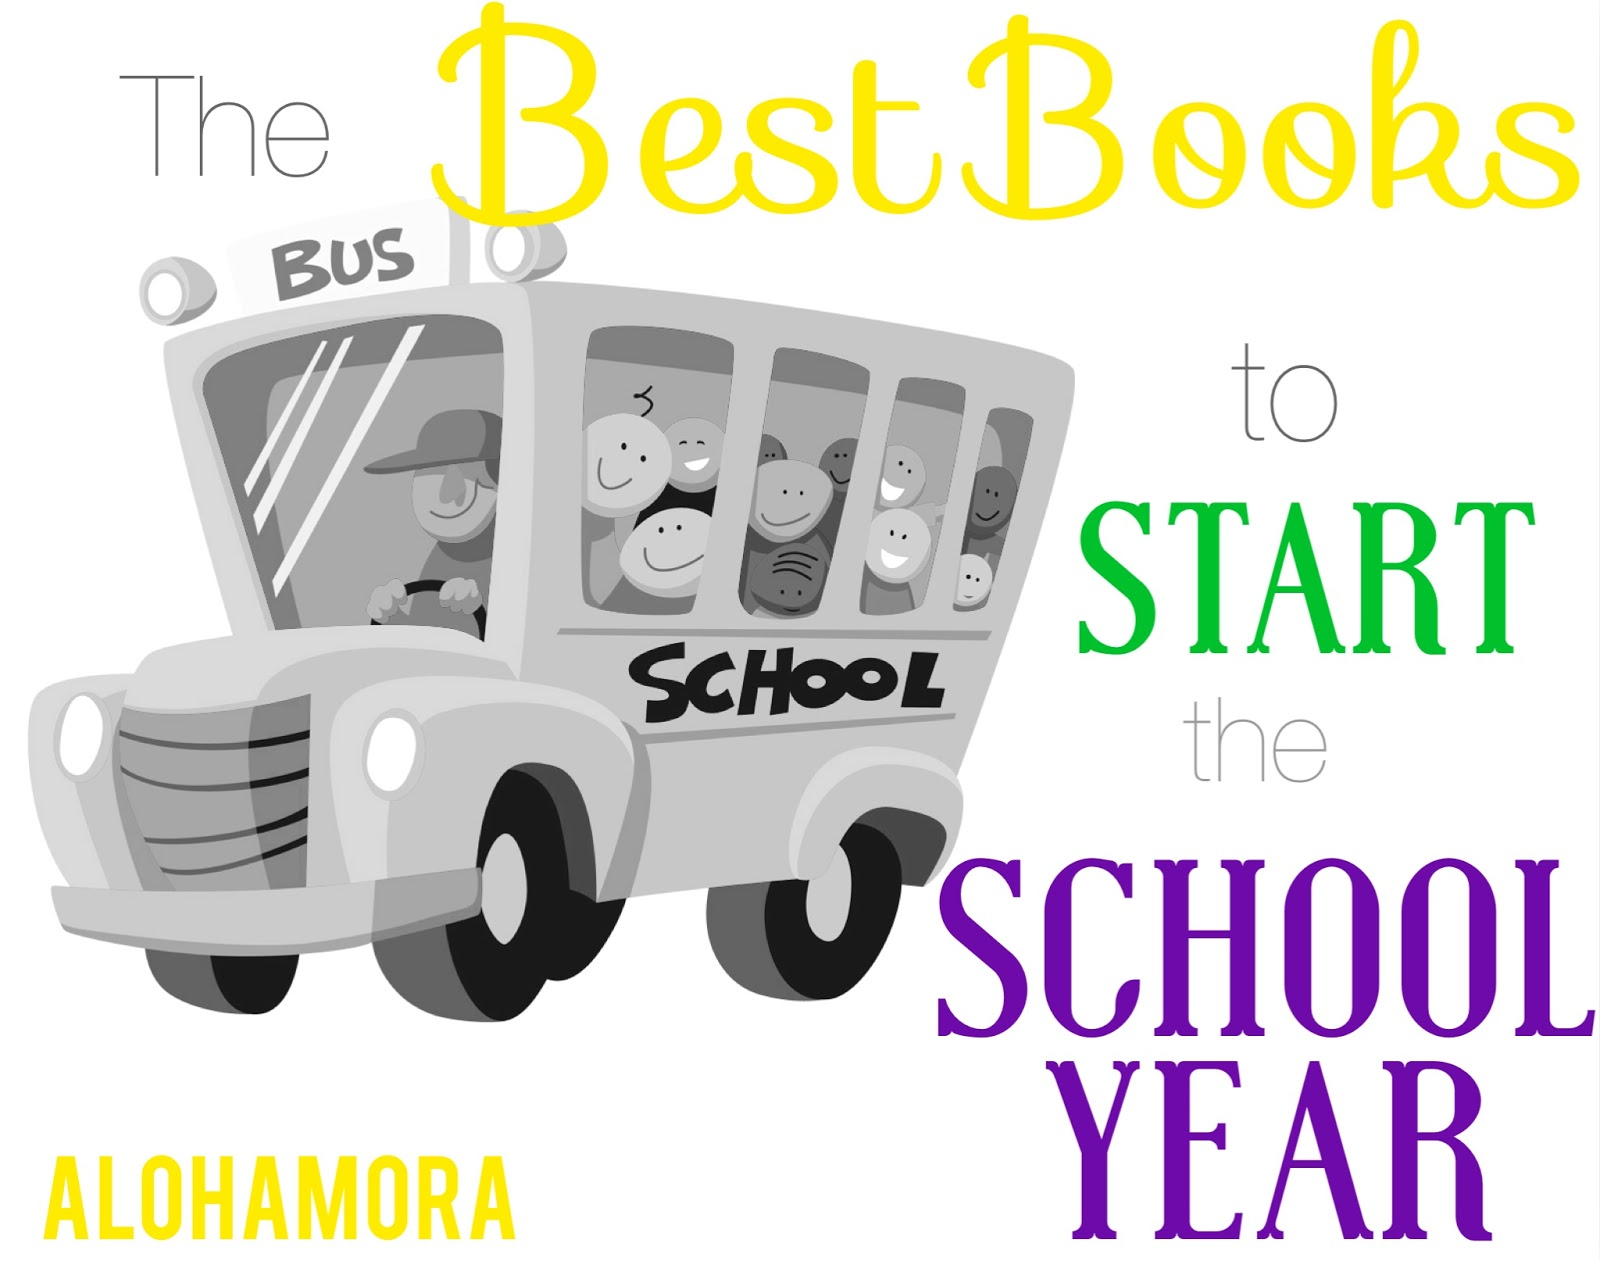 The Best Books to Start the School Year whether you are teacher looking for a great read aloud (picture or chapter book) or a student (elementary, middle/junior high, or high school) looking for a great book to start the year.  This book list has all the best ones.  Alohamora Open a Book http://www.alohamoraopenabook.blogspot.com/